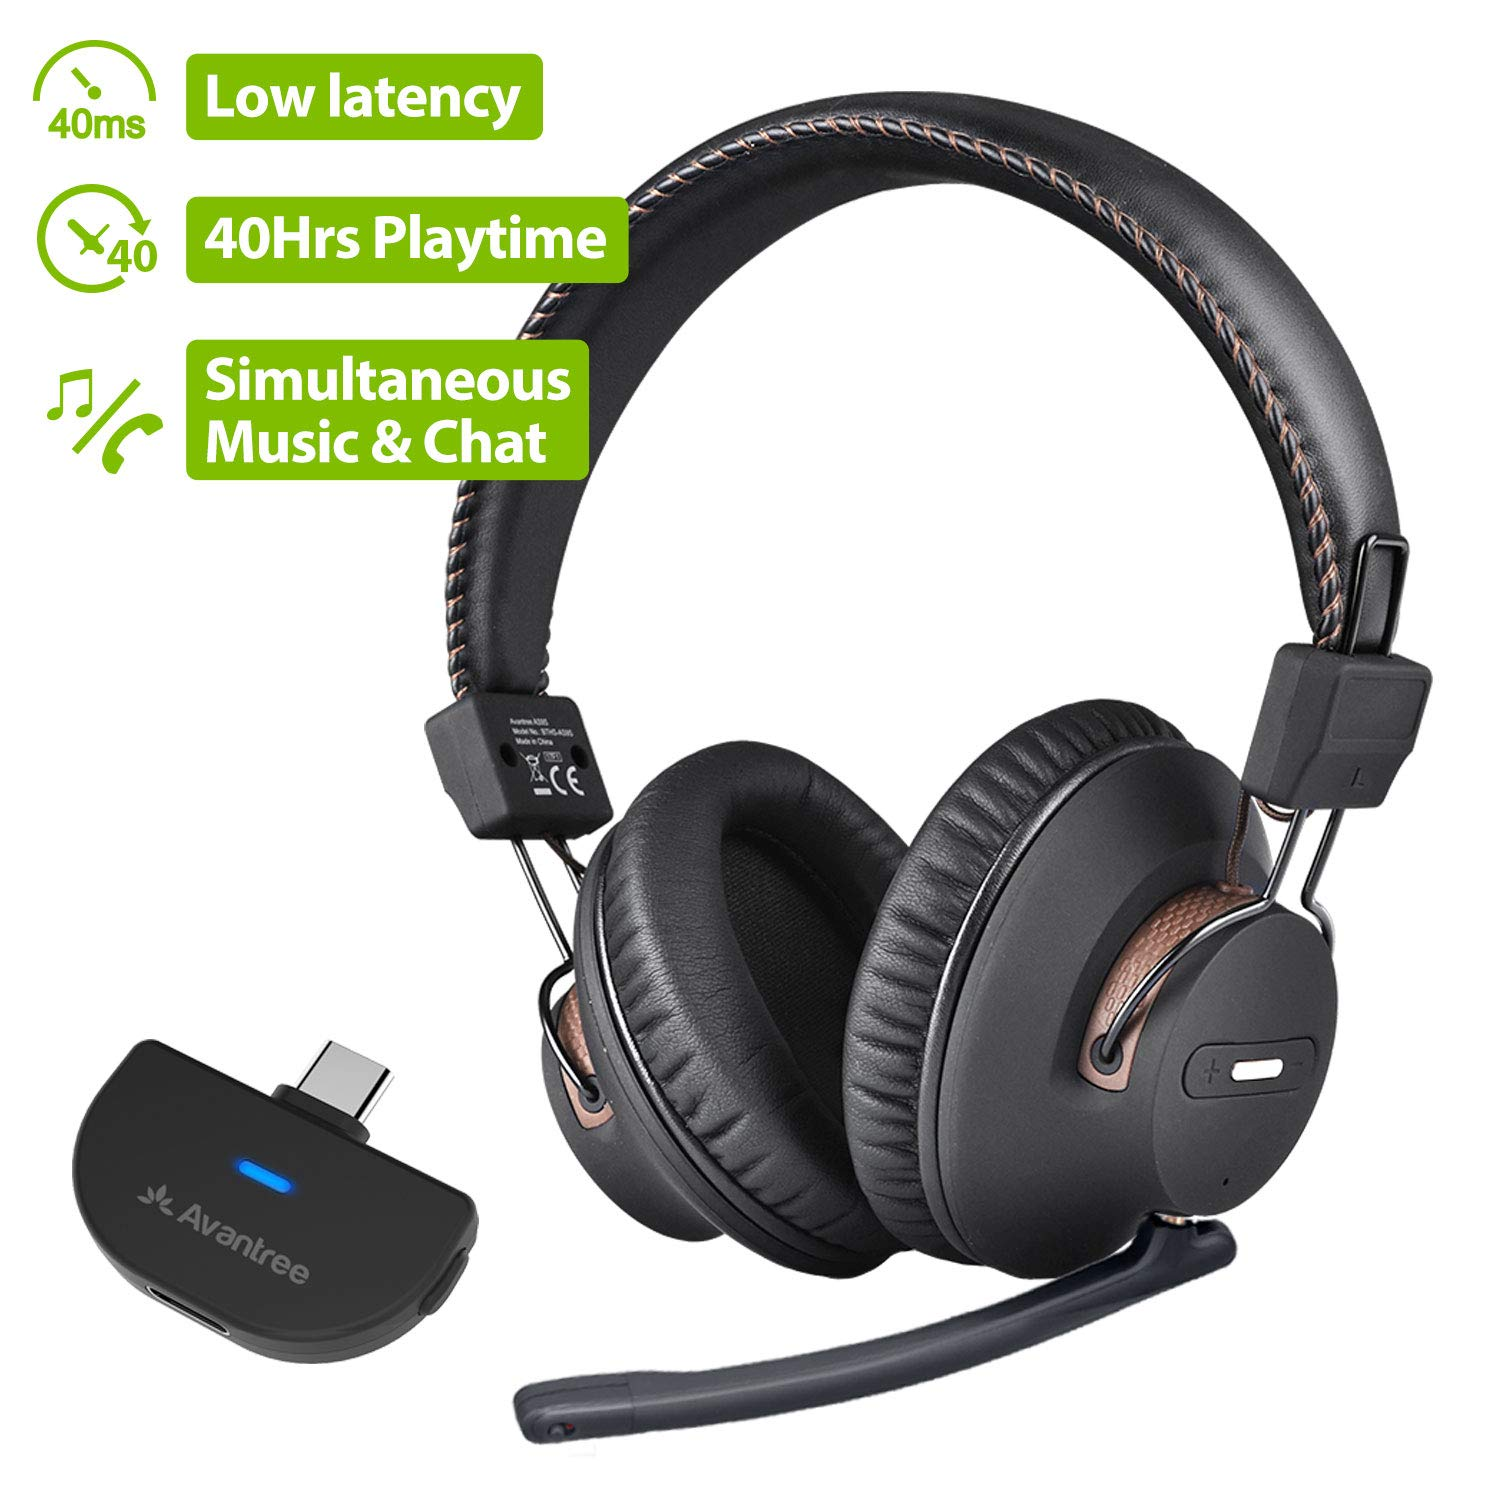 Amazon Com Avantree C519m 40hrs Play Time Wireless Gaming Headphones Set For Nintendo Switch Pc Desktop Computer W Bluetooth 5 0 Usb C Audio Transmitter Plug Play Chat Music Simultaneously No Delay Electronics